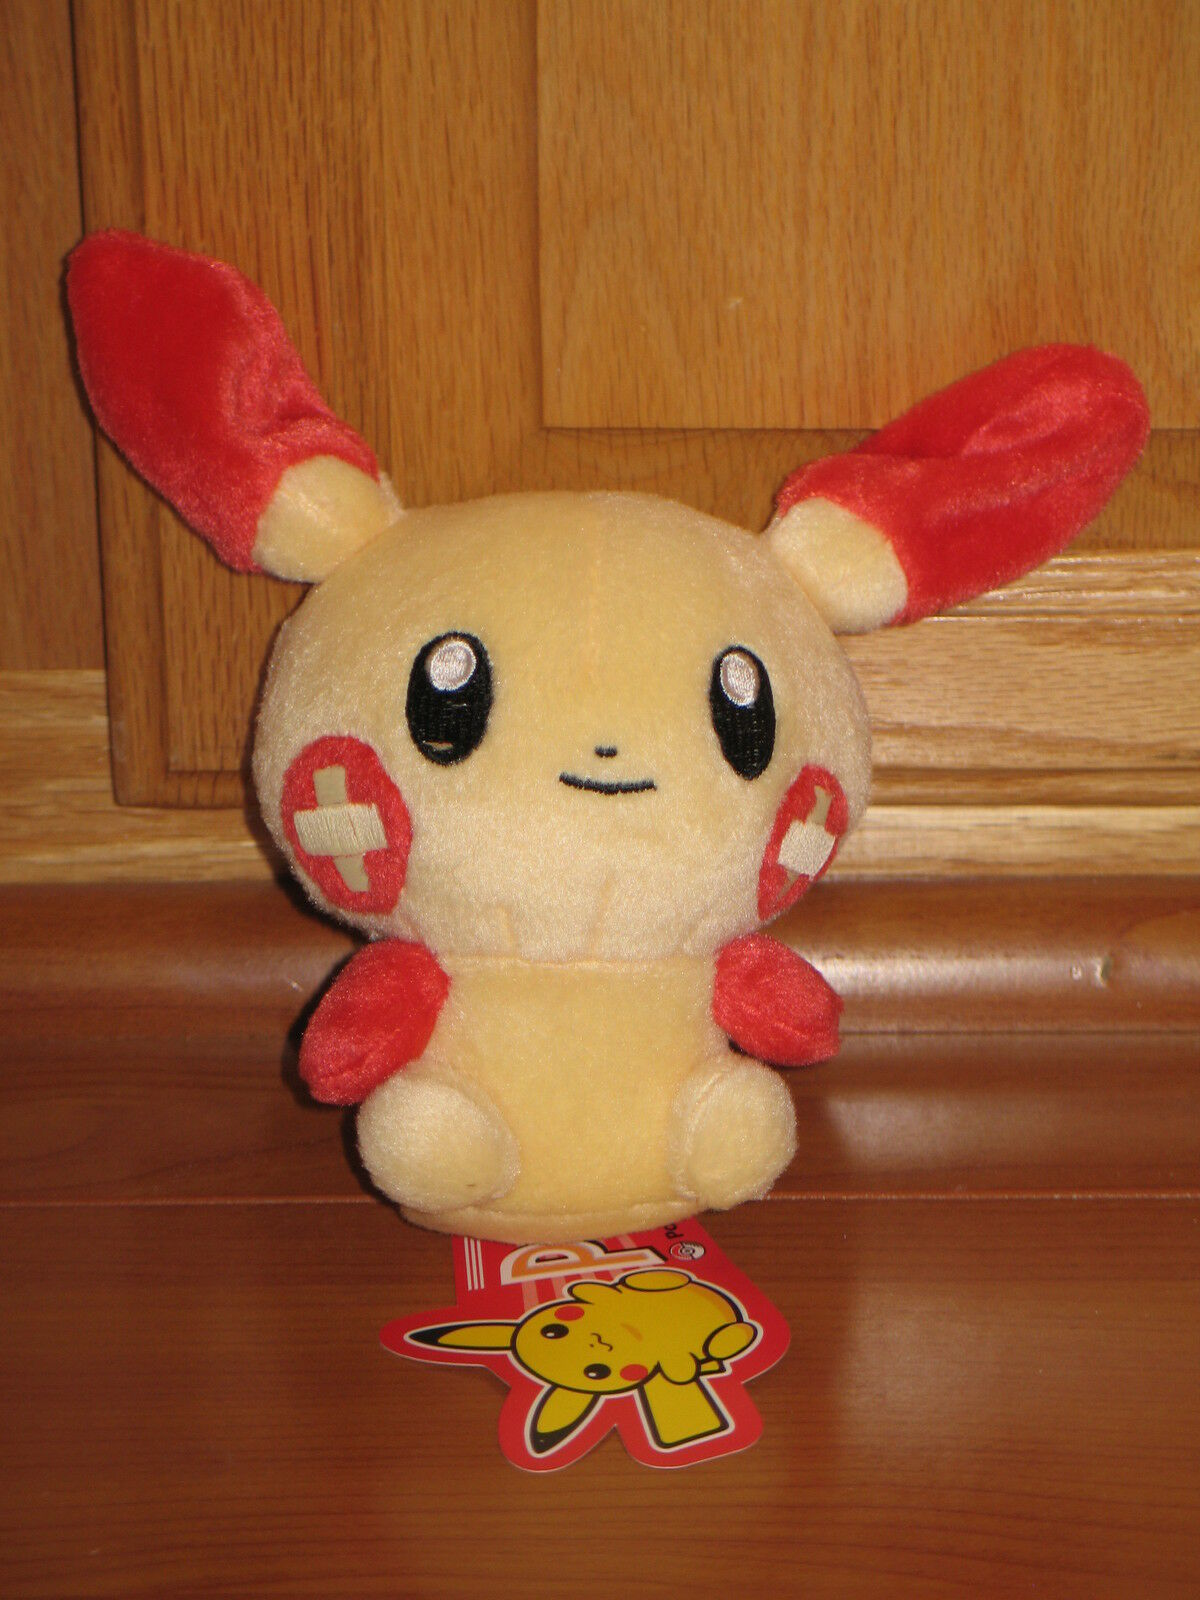 New PLUSLE PokeDoll Pokemon Center Japan Plush Plush Plush Poke Doll Plush Plushie US Seller 7d0f5d